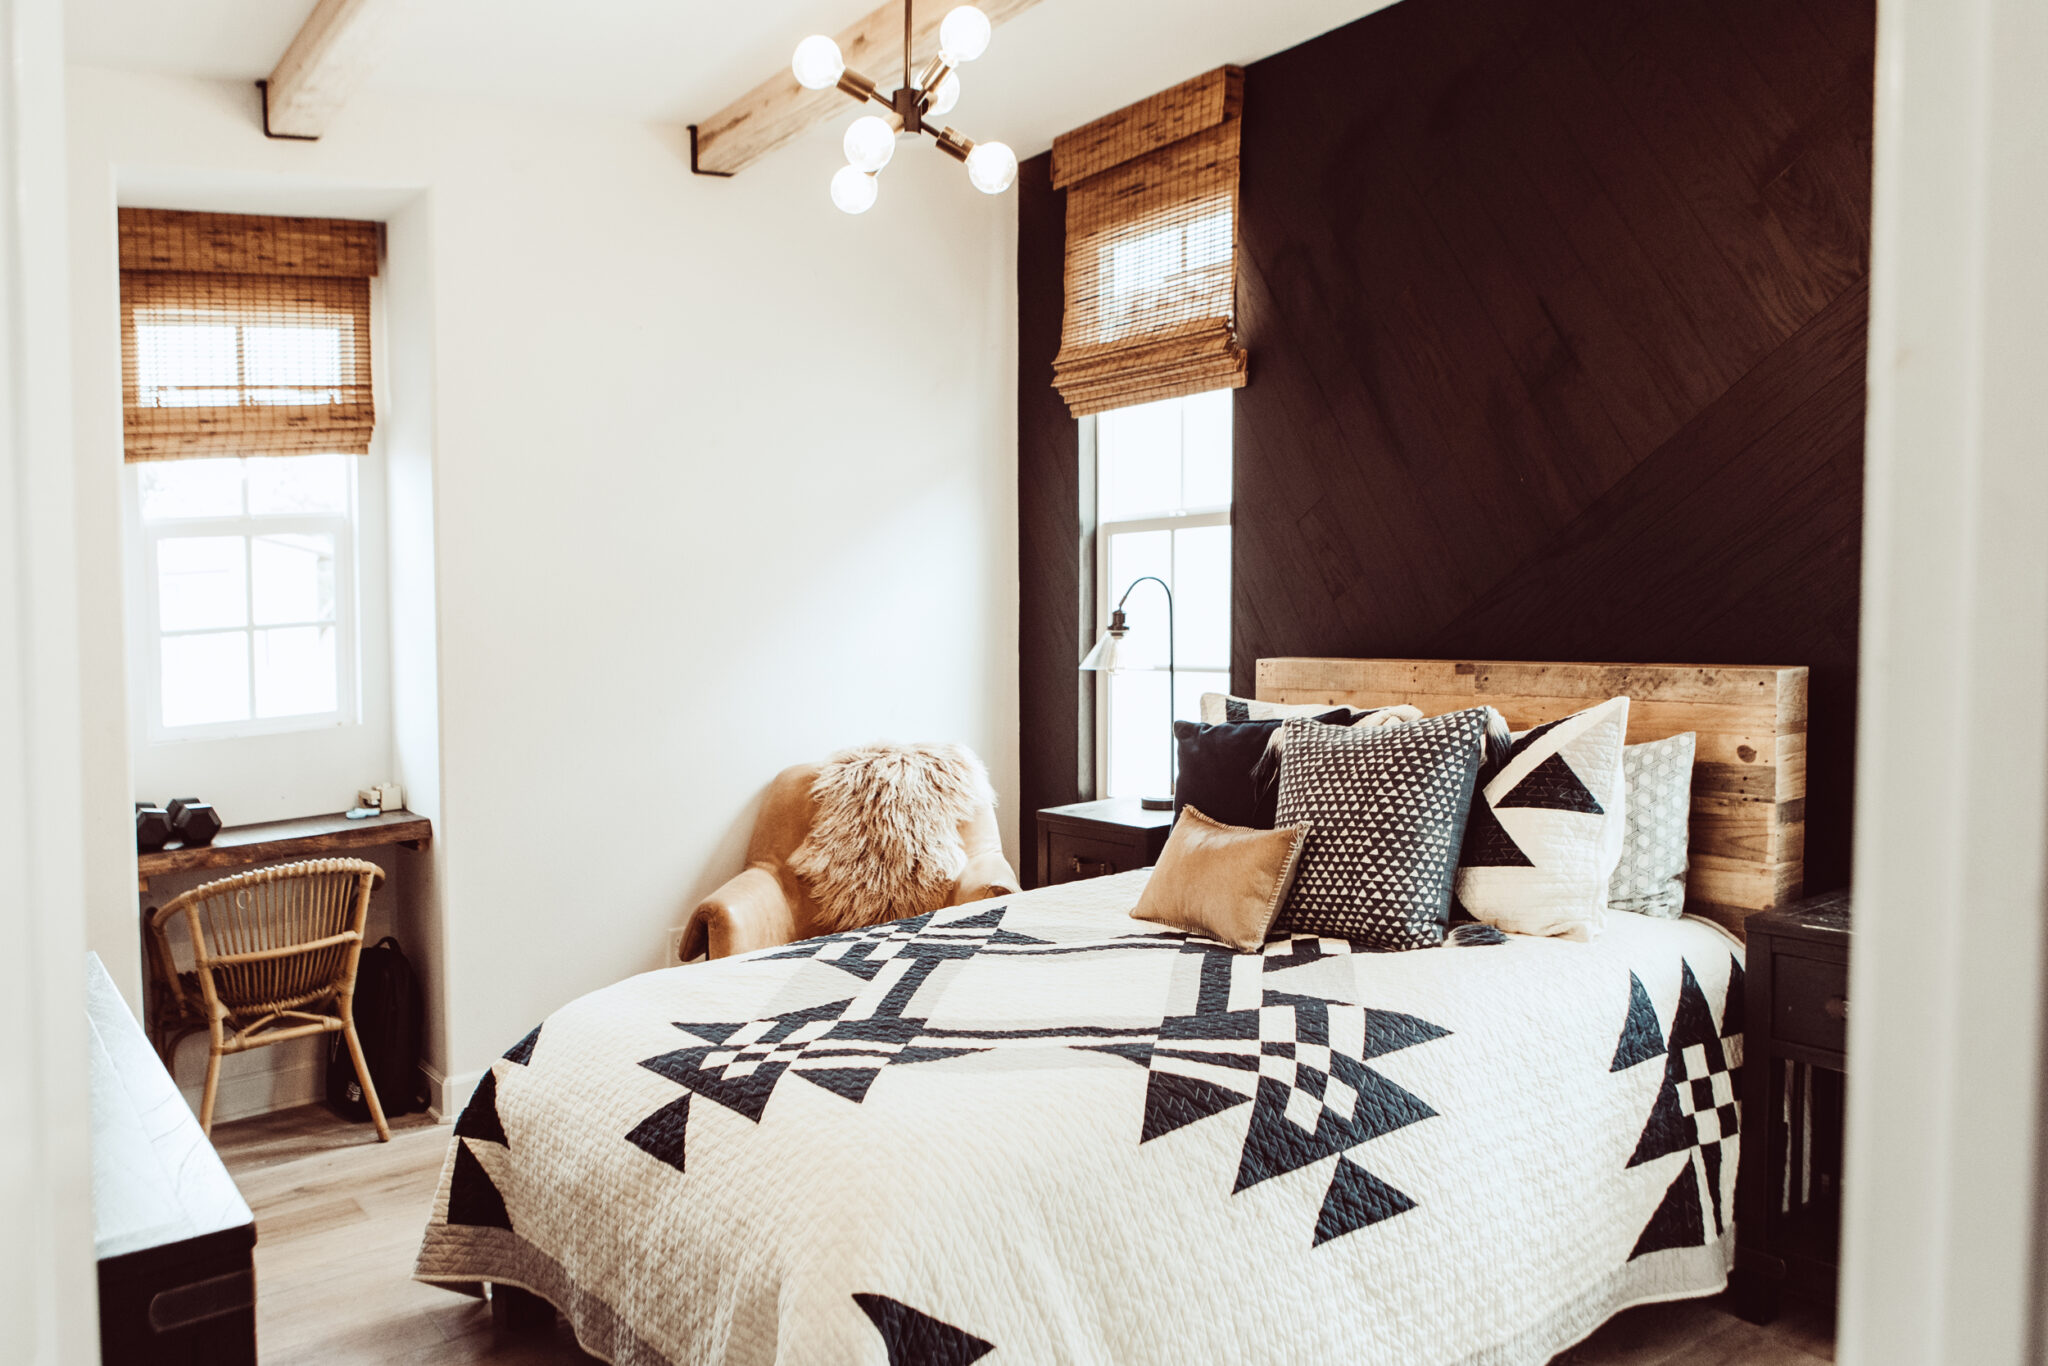 bedroom with stikwood feature wall